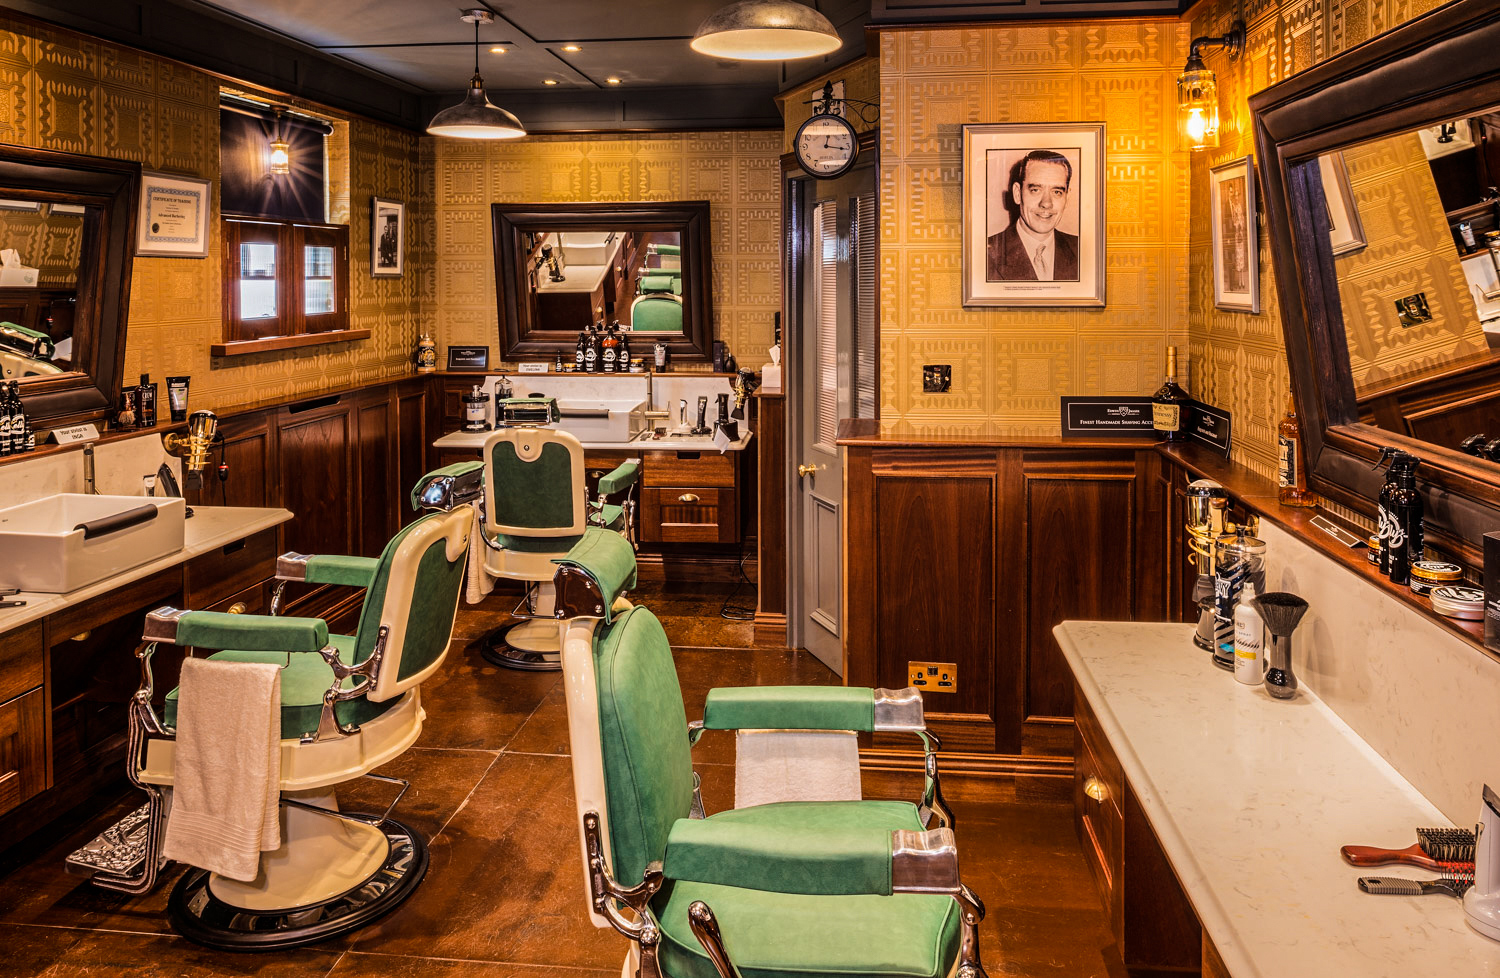 interiour-photographer-Mayo-Ireland-Kellys-Barbers-Interiour-2